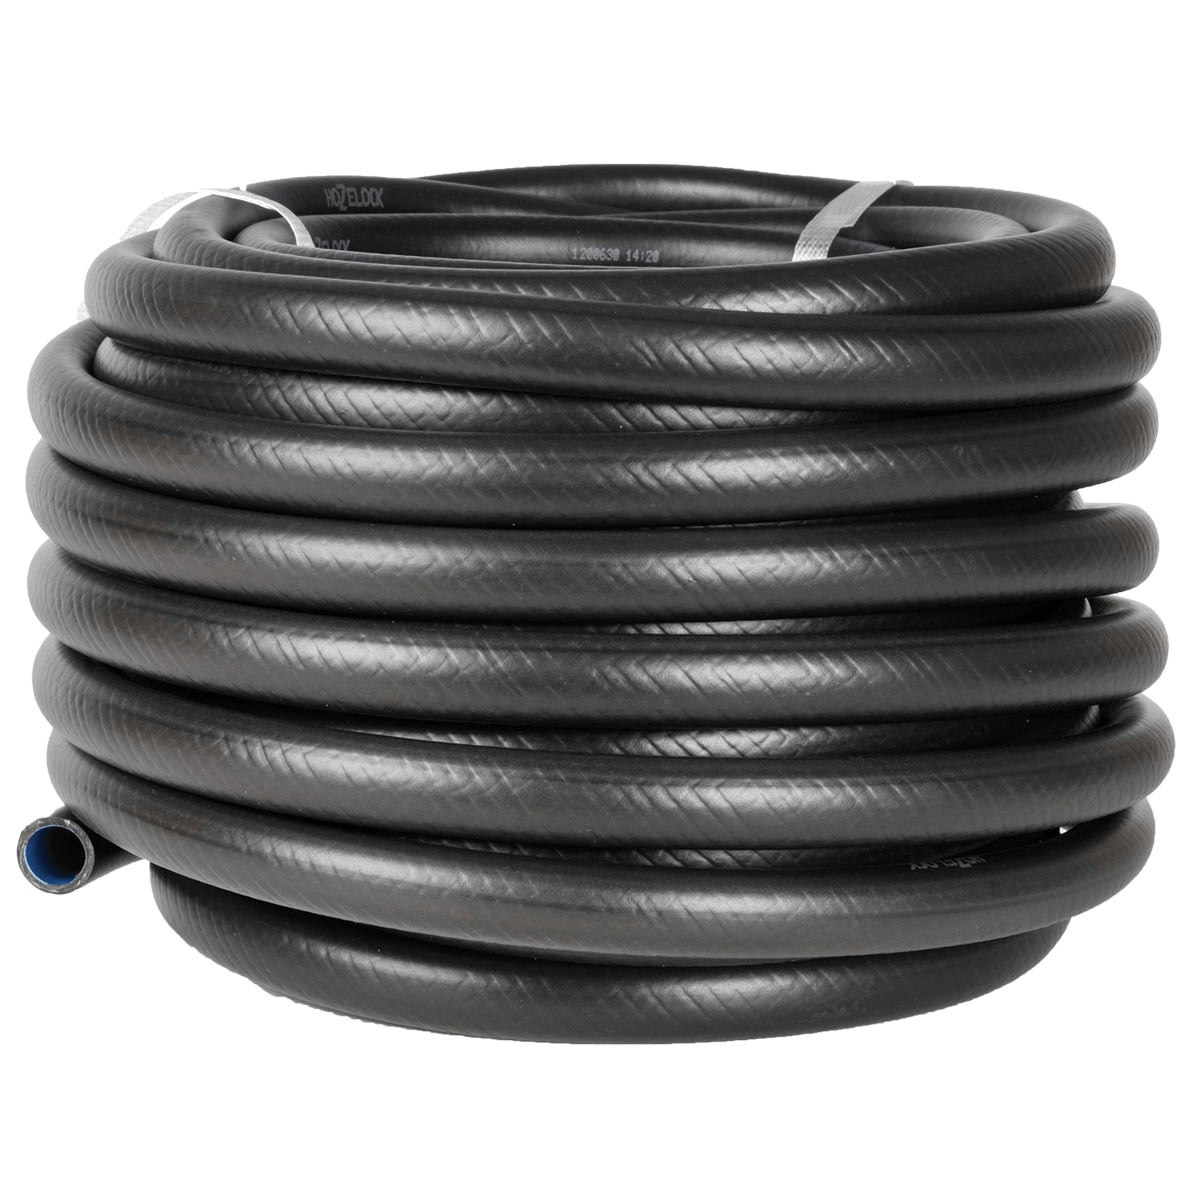 Irrigation main delivery pipe (1 inch circumference)